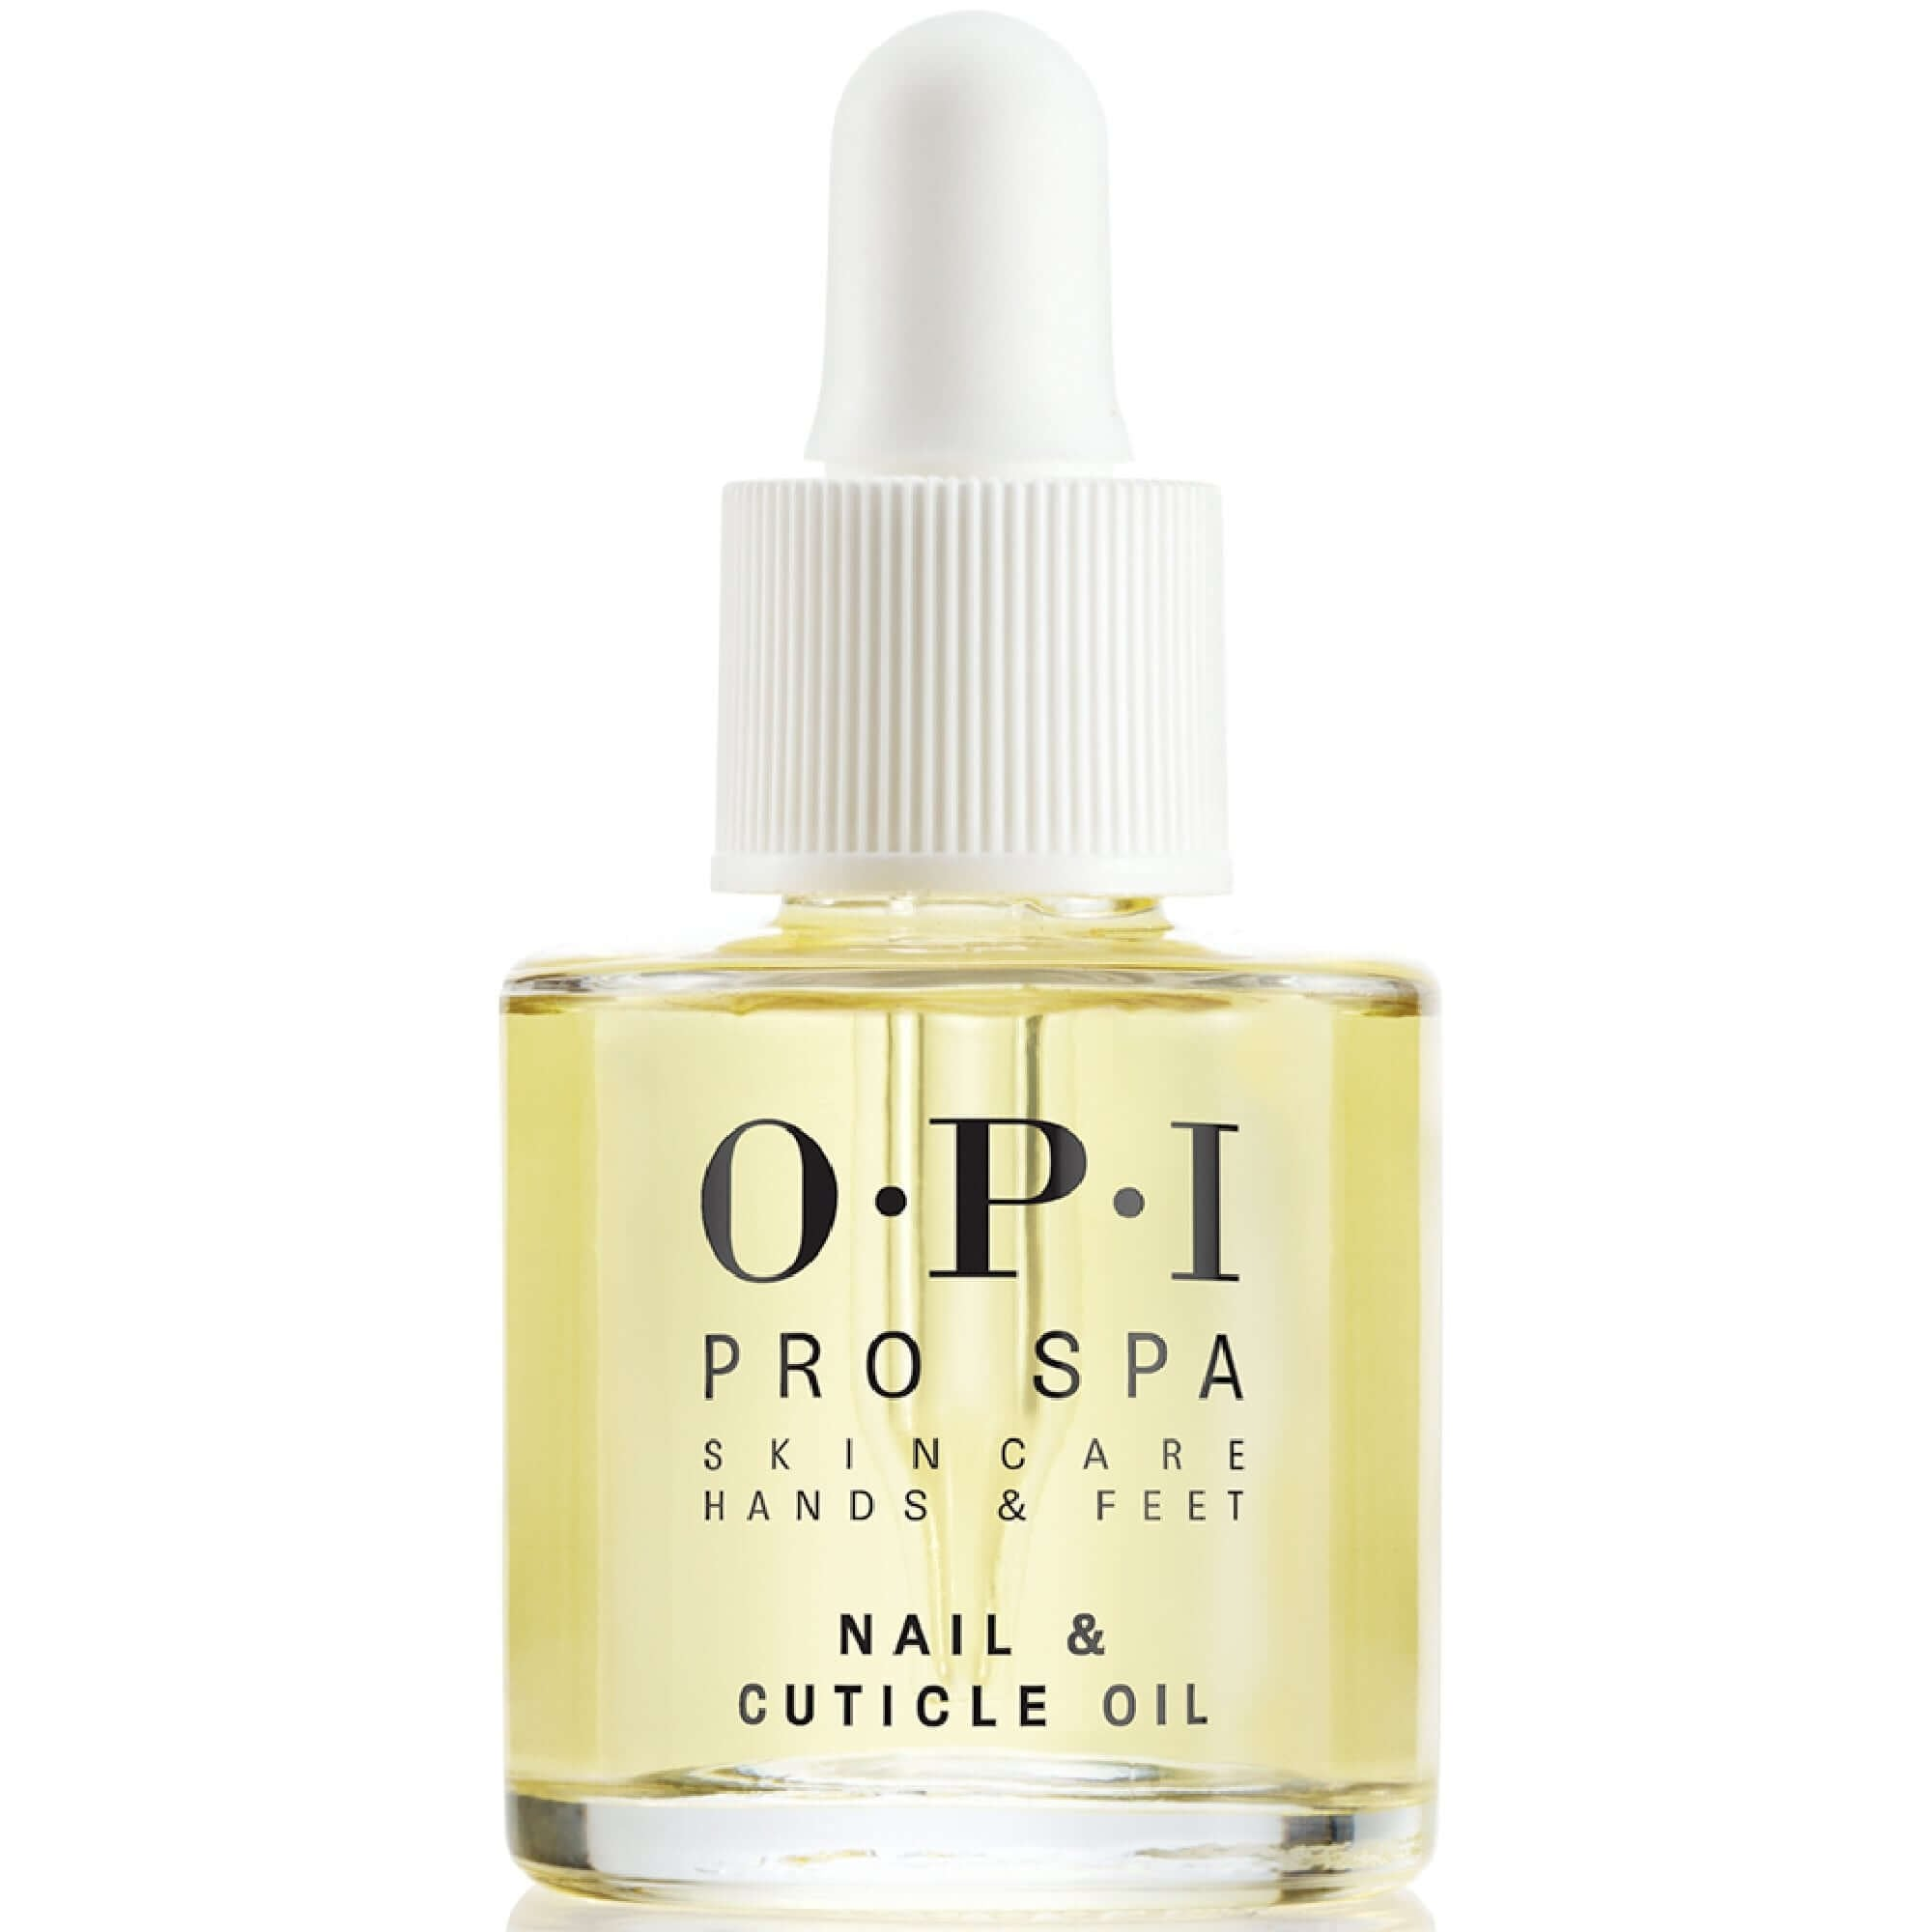 OPI Pro Spa - Nail & Cuticle Oil 28ml